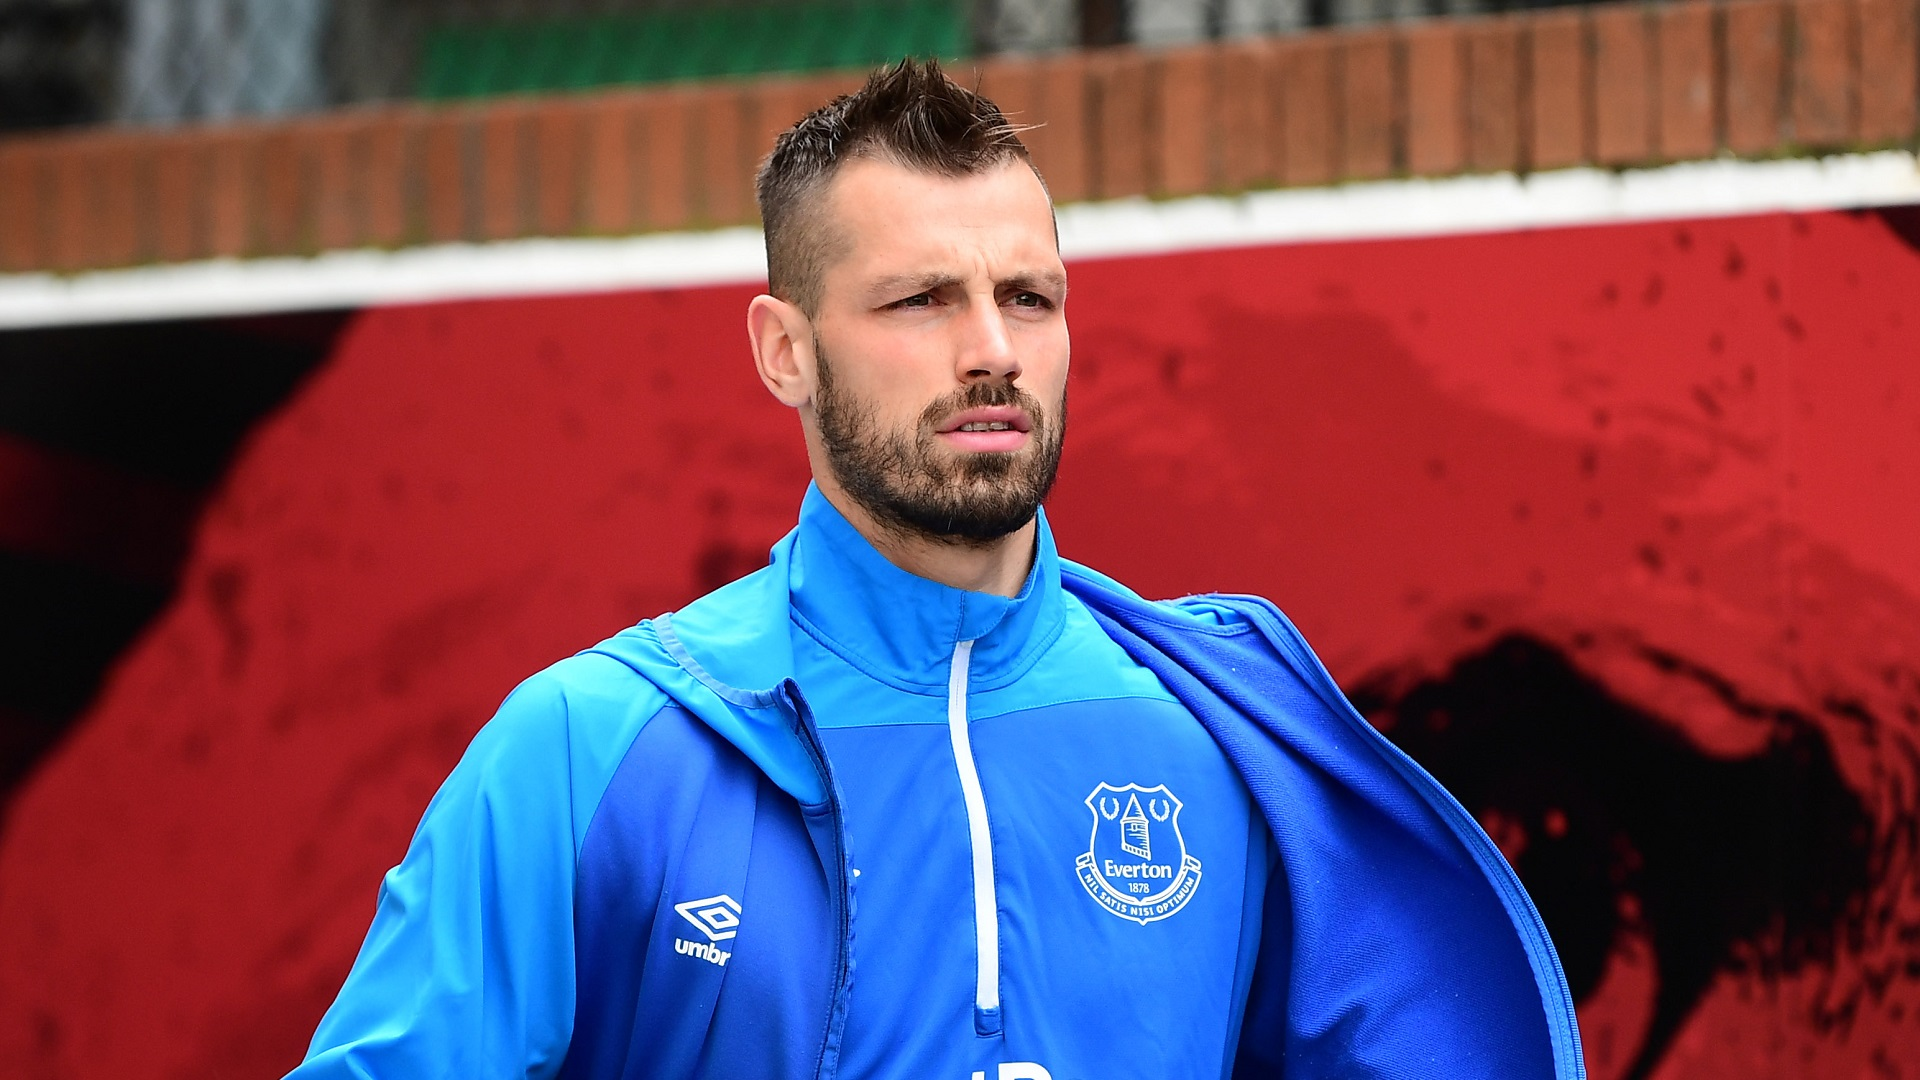 Footballers will play until August but people have to follow coronavirus advice, says Schneiderlin